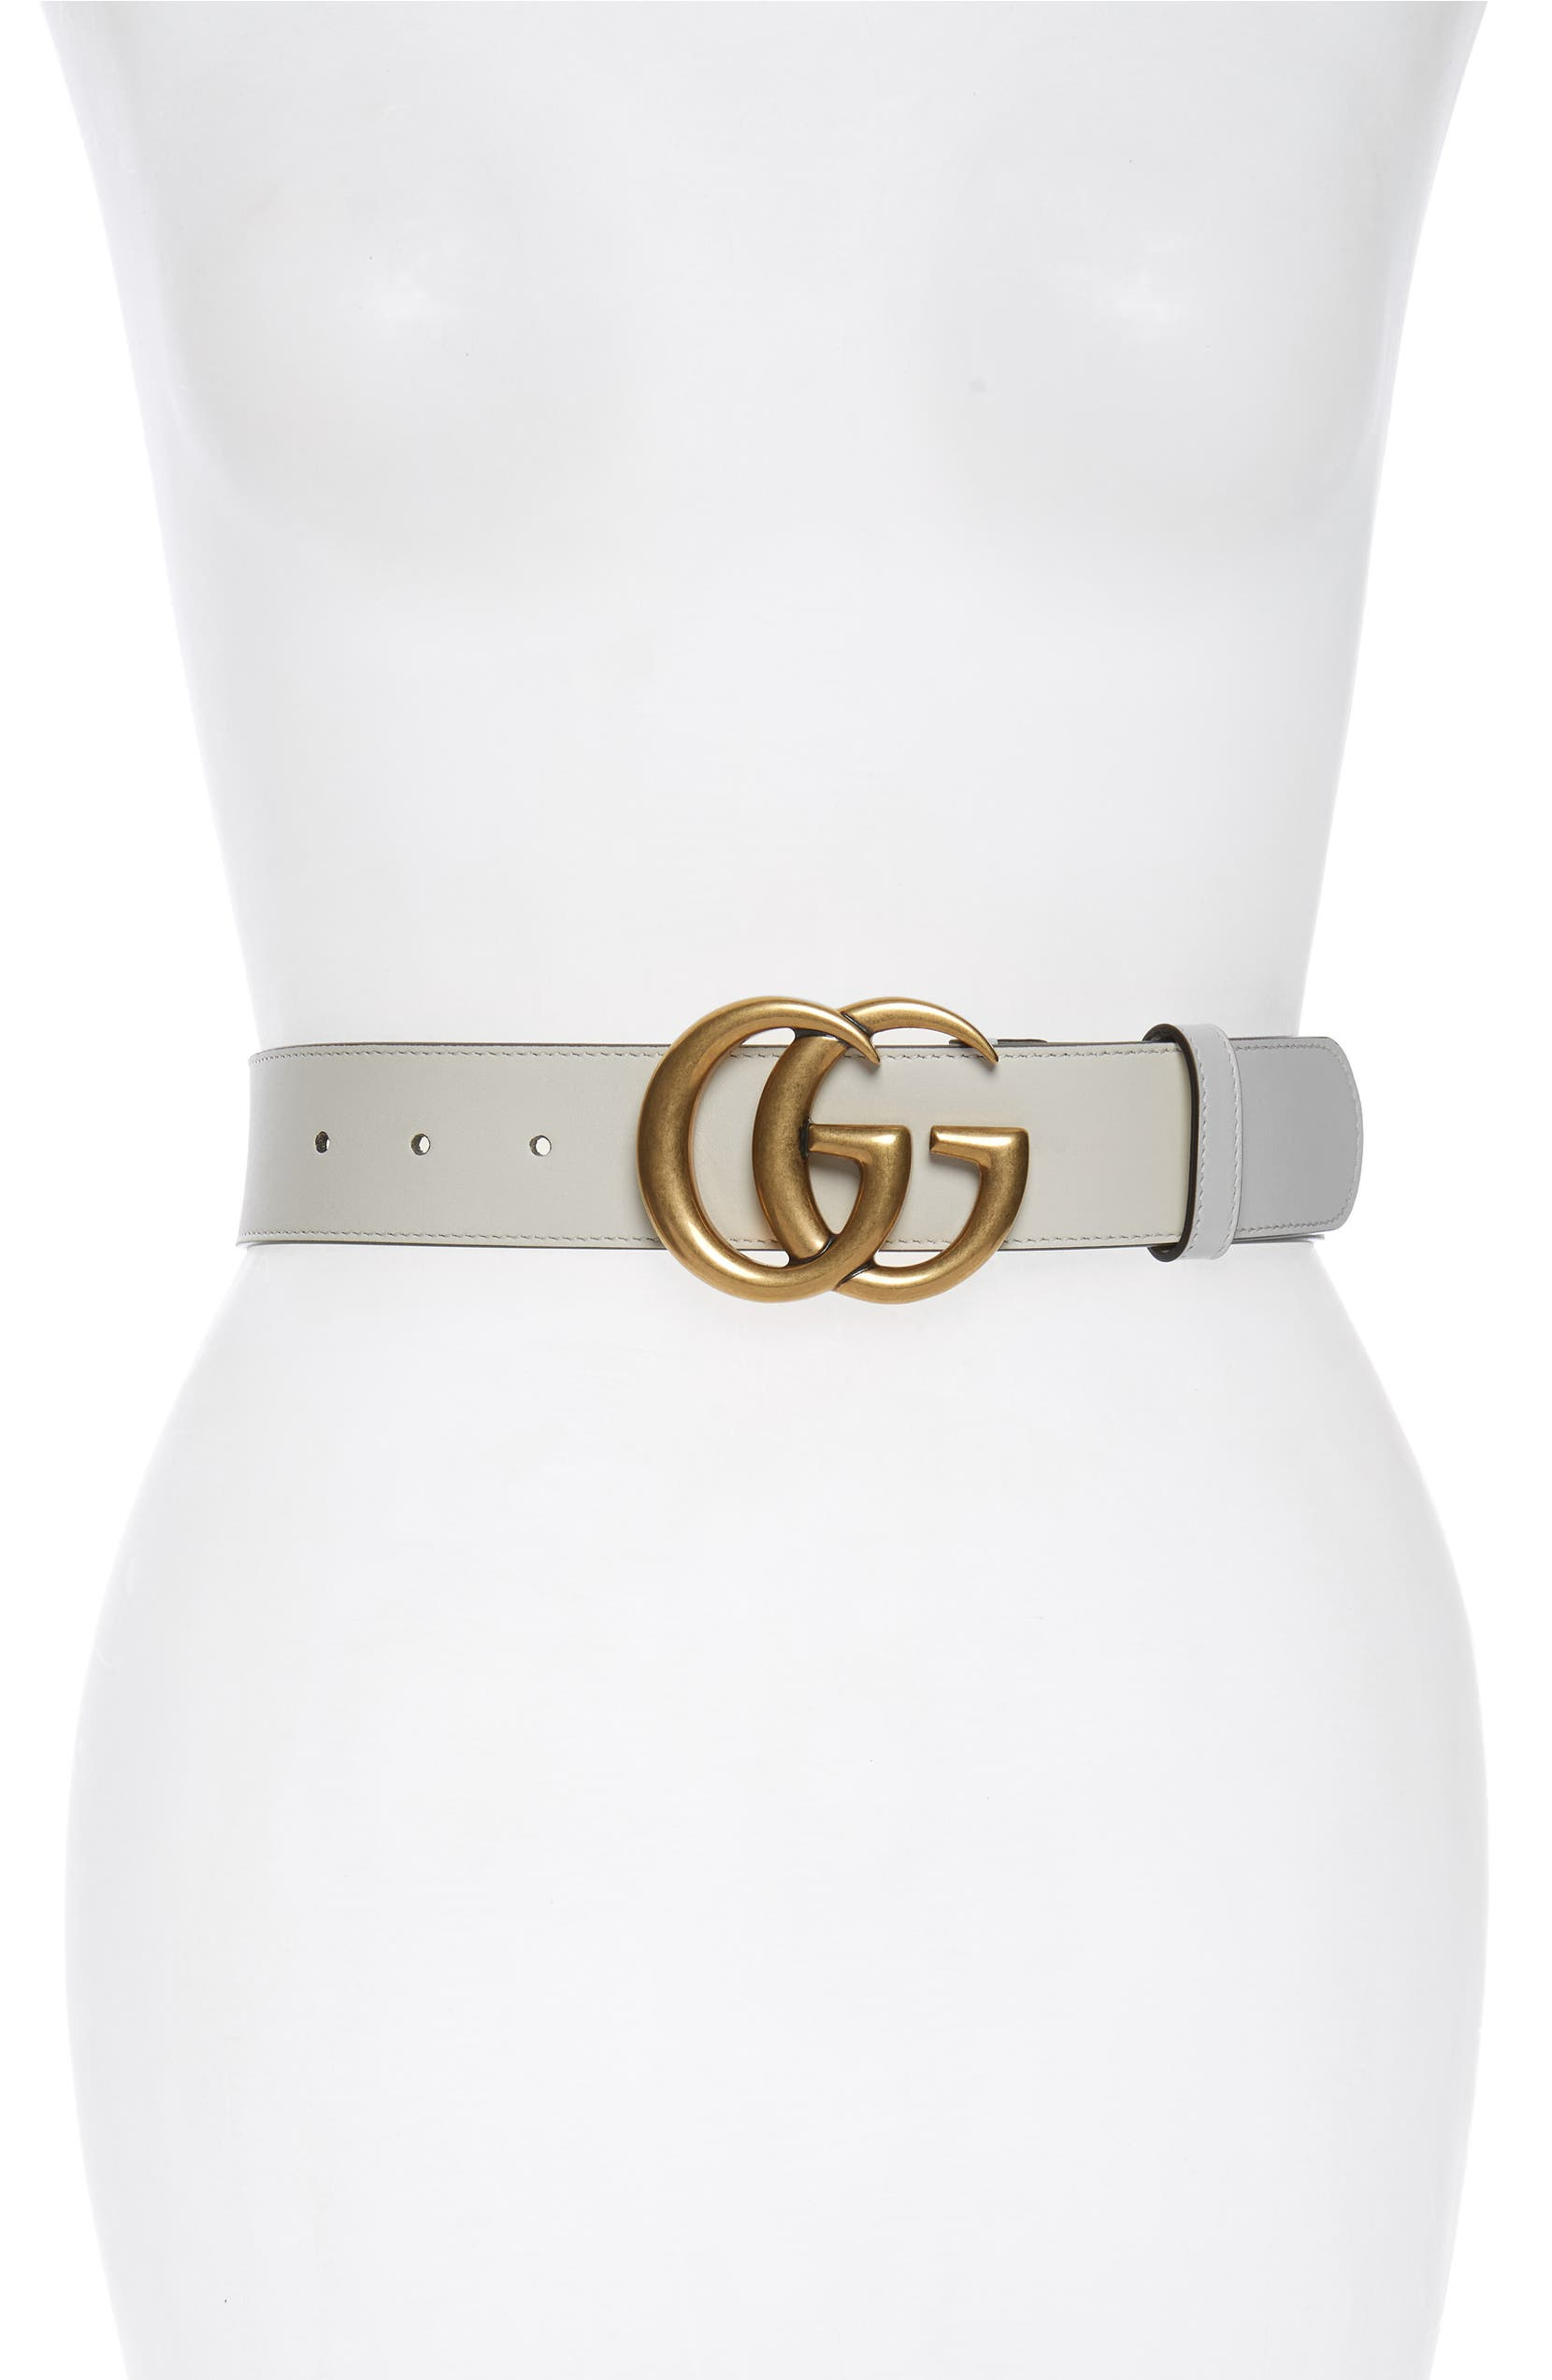 10db102dd4d8 Gucci Cintura Donna Leather Belt | Nordstrom